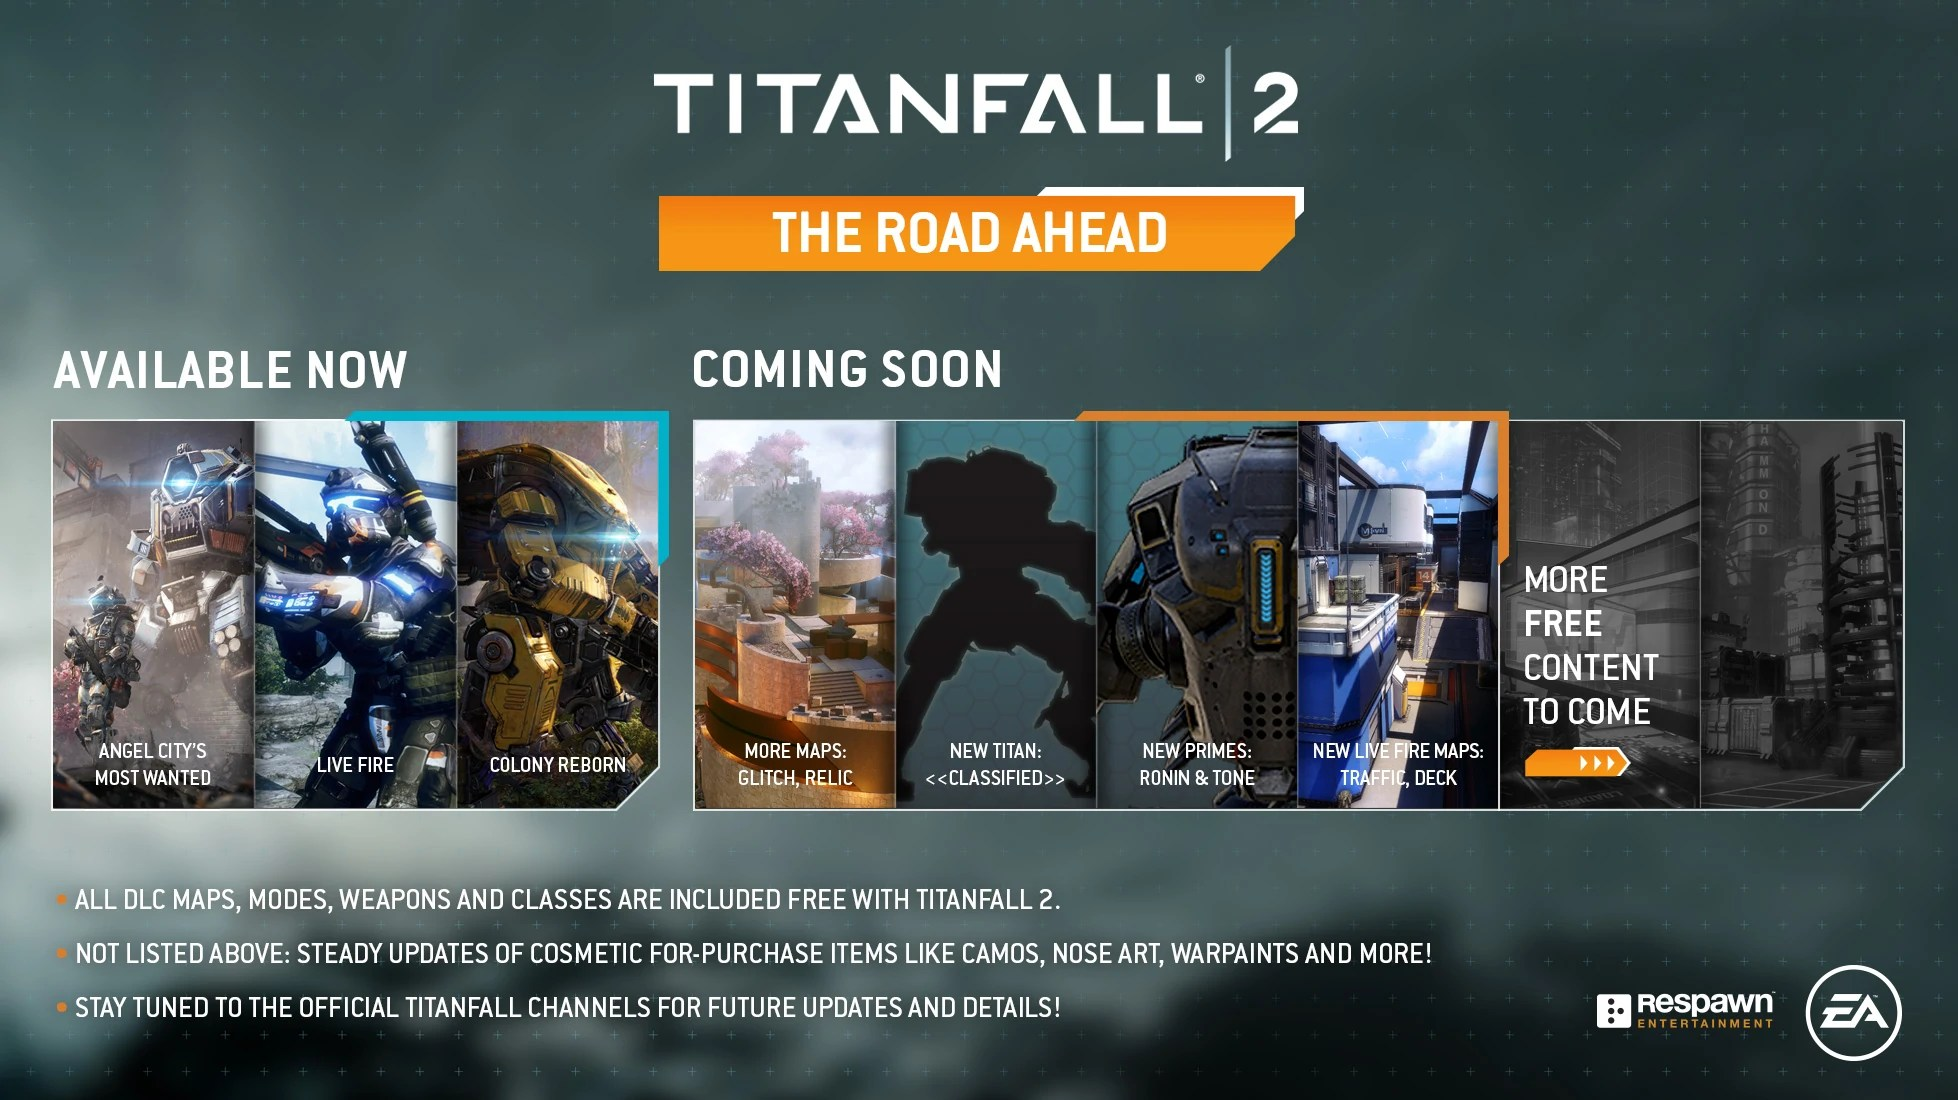 Halo Wallpaper Fall Of Reach Downloadable Content Titanfall Wiki Fandom Powered By